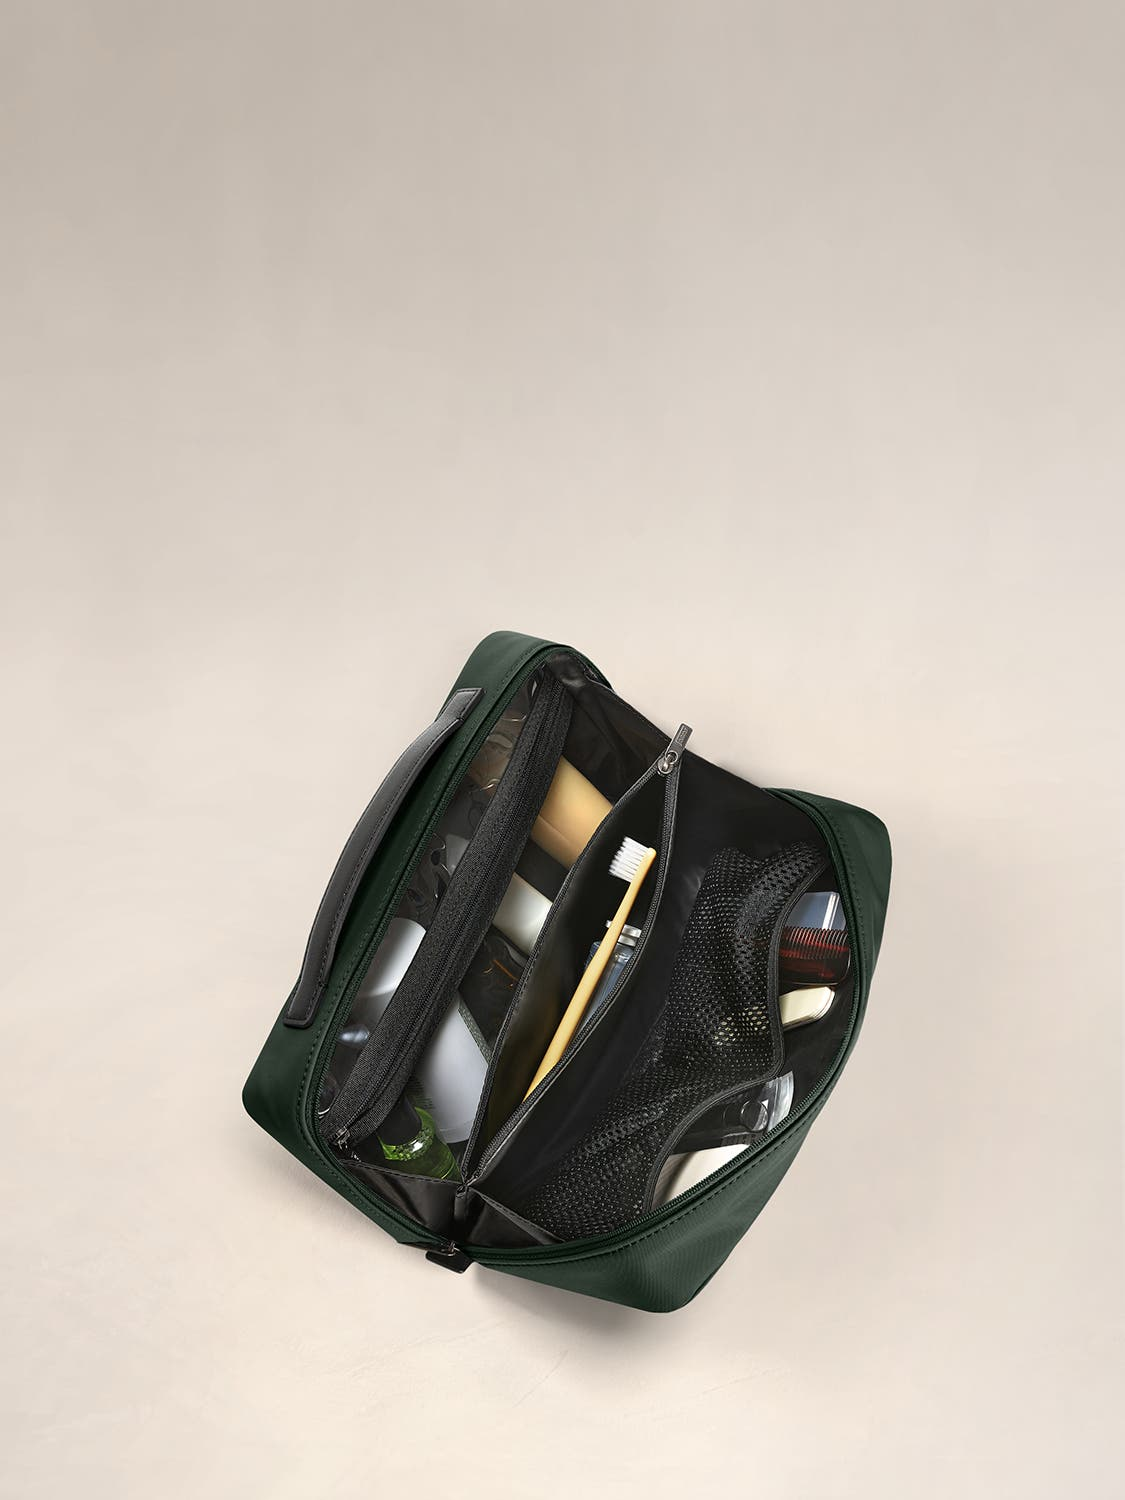 Inside view of a travel toiletry kit in green with black interior pockets full of travel toiletries.